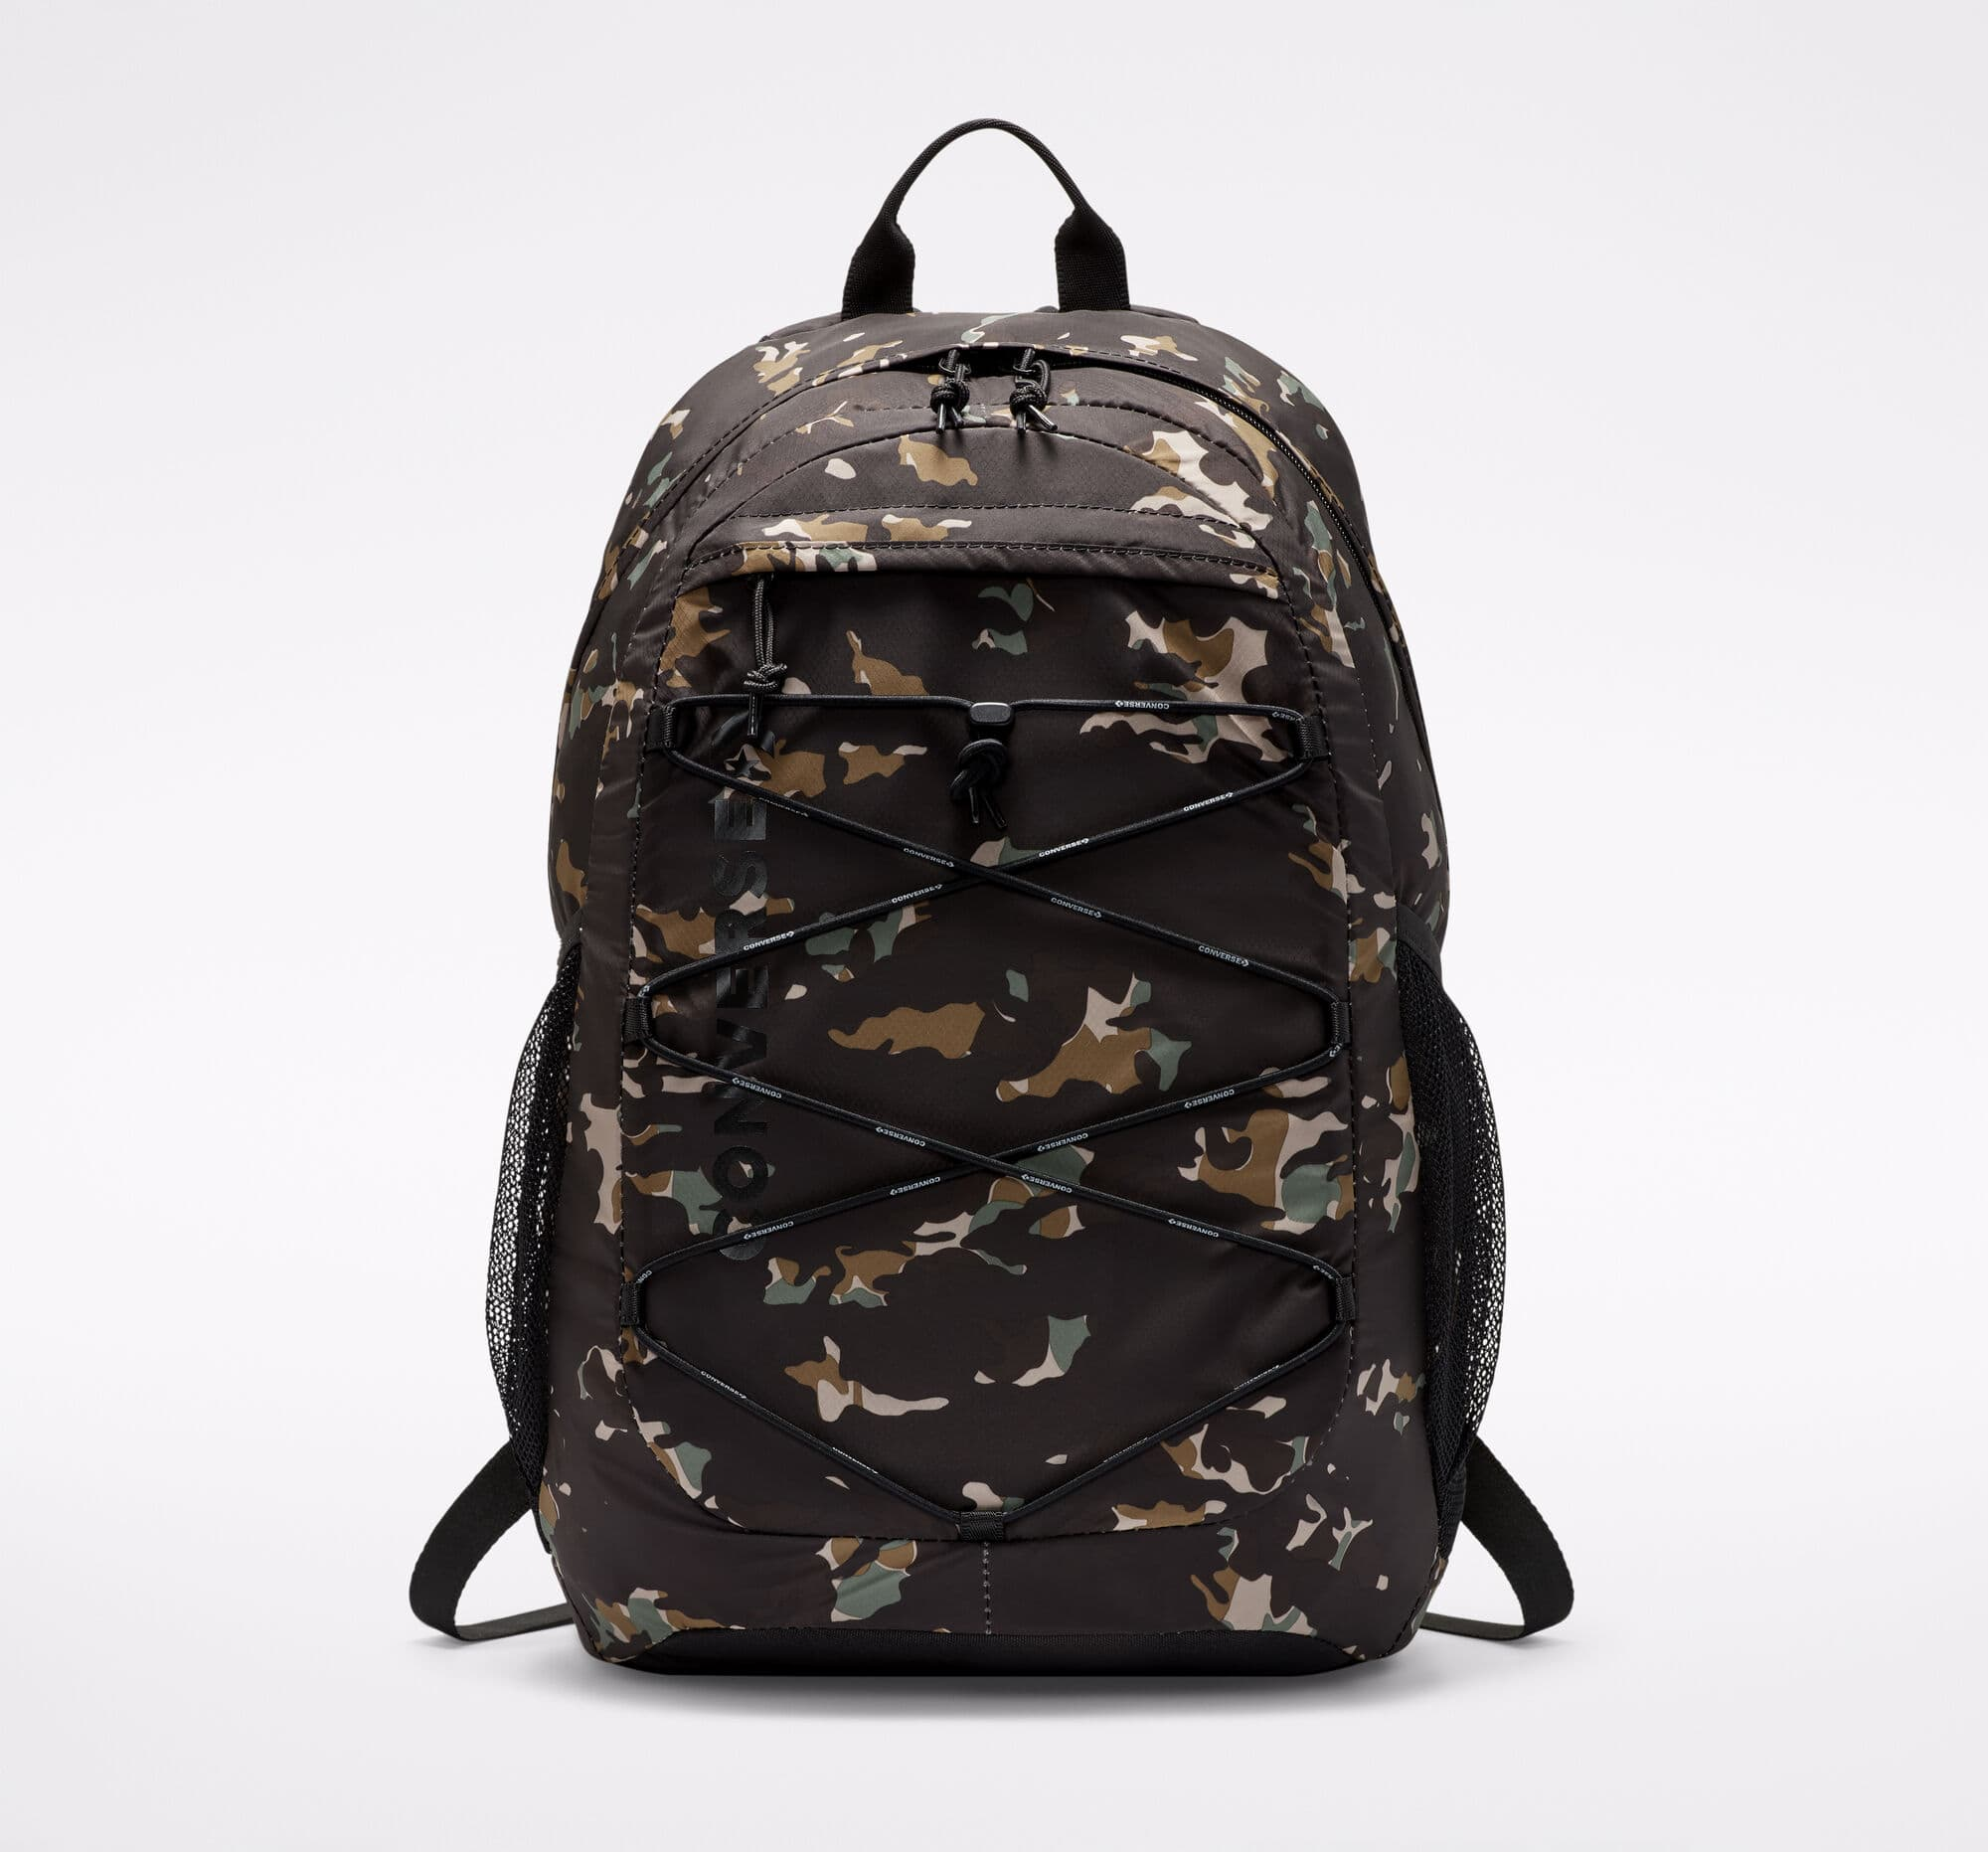 Converse Swap Out Backpack $21, As If Backpack $14.68, Go Lo Backpack $14.68, More + Free Ship